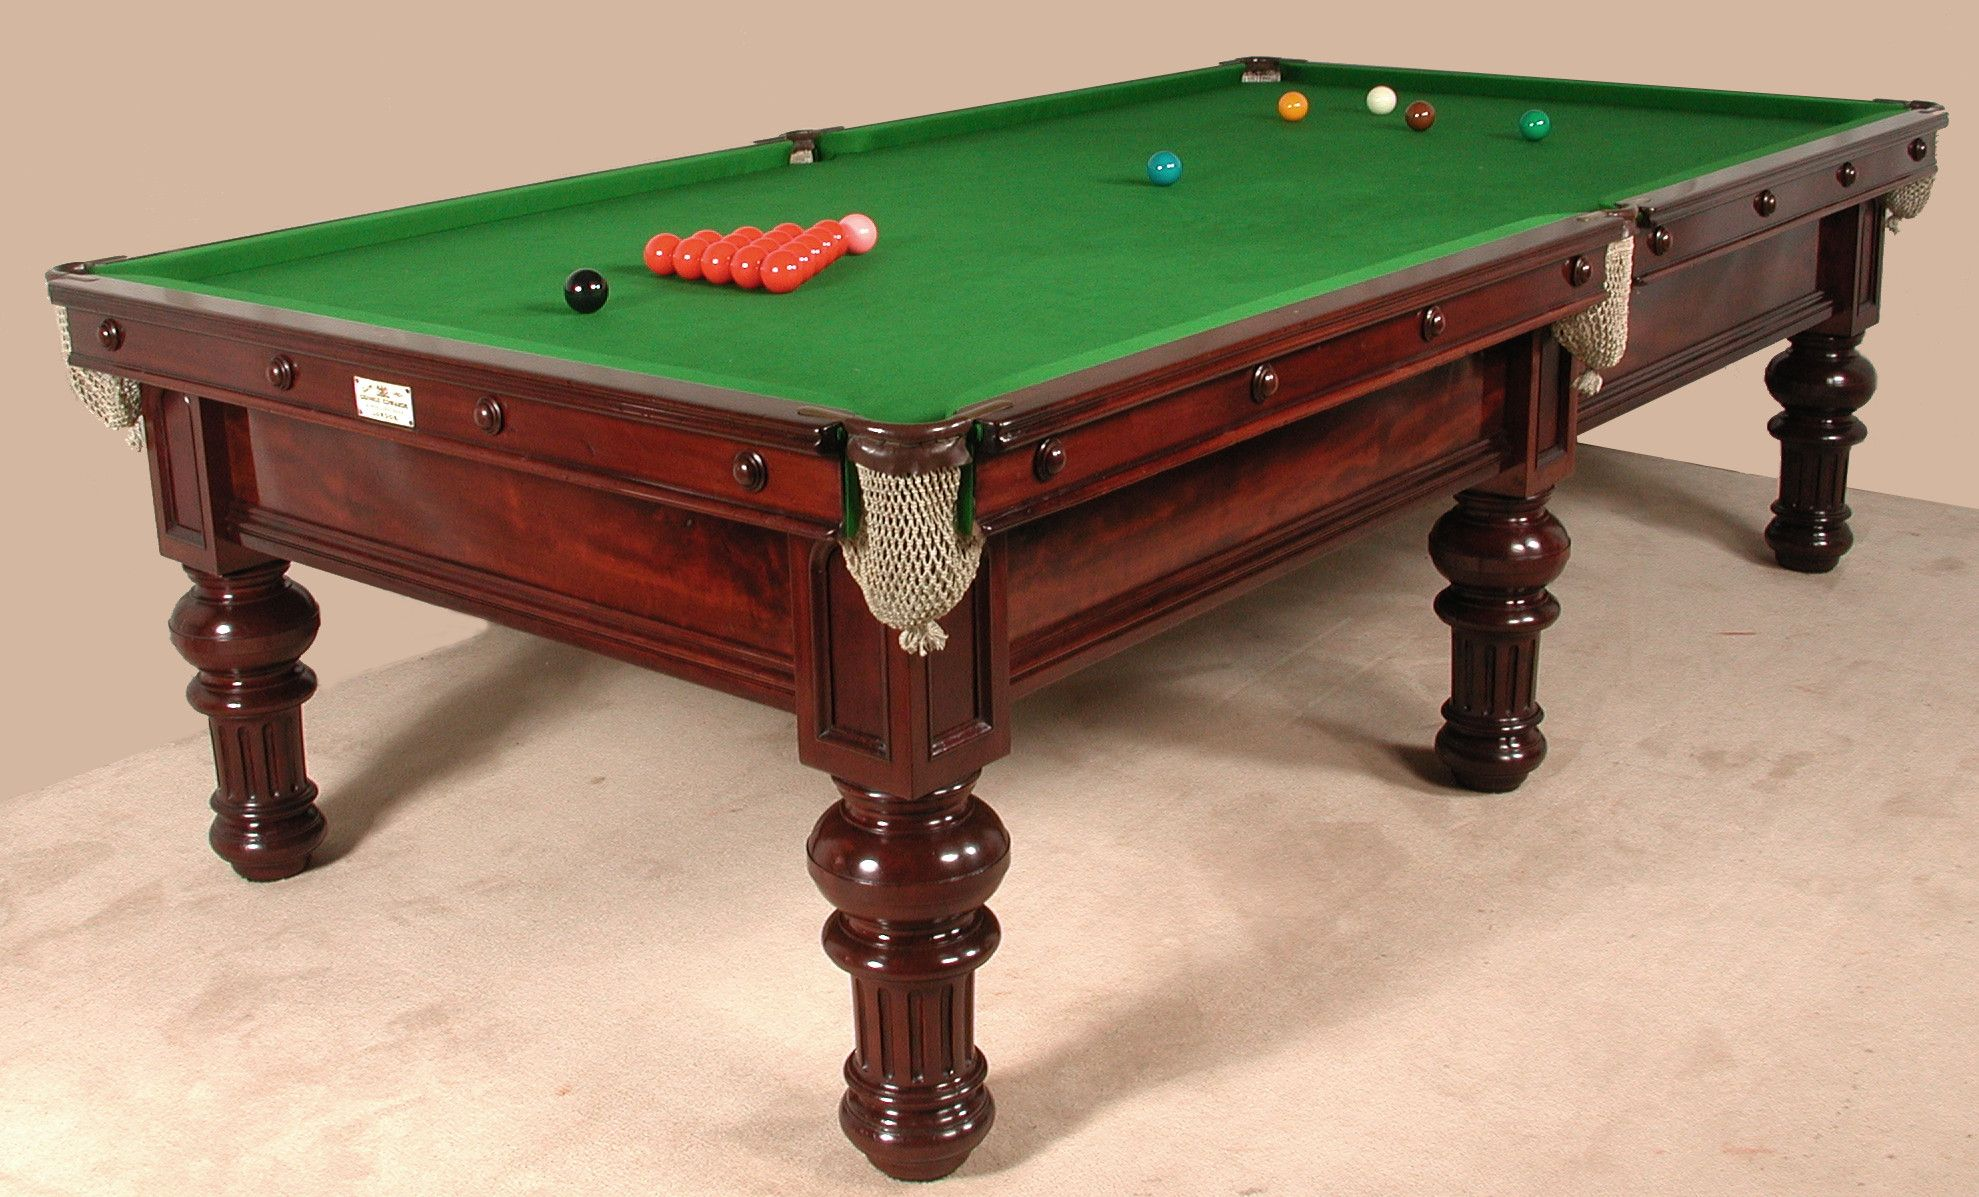 Snooker Table By George Edwards Of London Billiard Room Ltd Antique Billiards Snooker Table Billiards